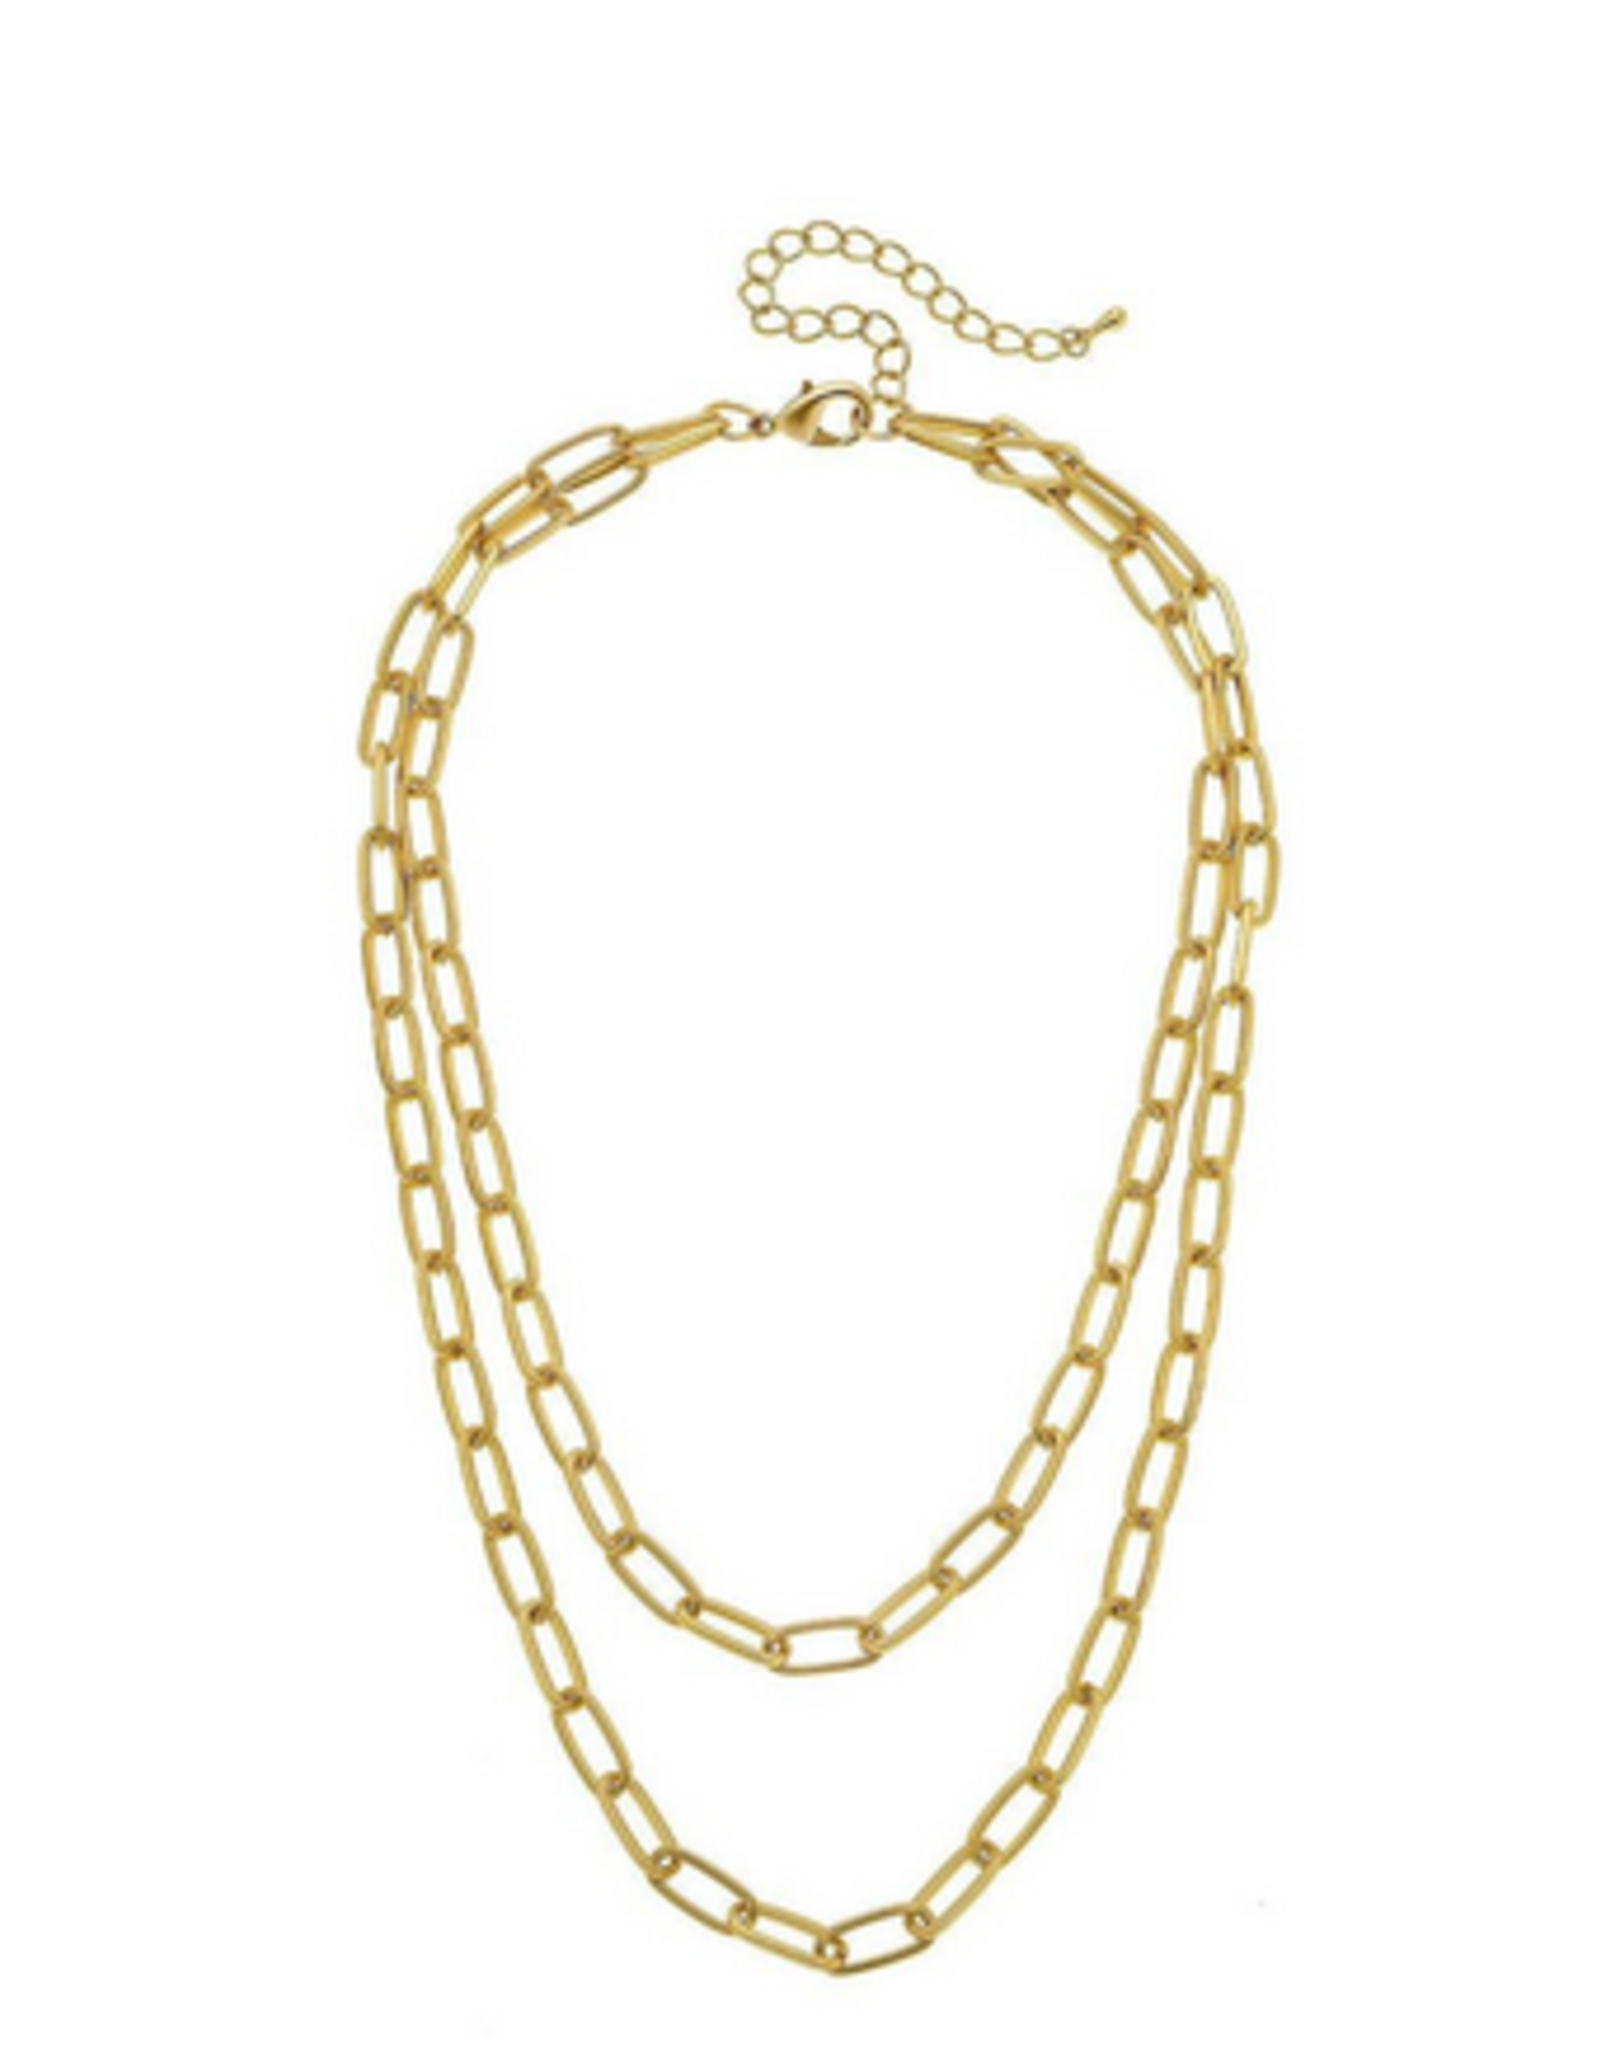 NECKLACE OVAL CHAIN LINK LAYERED MATTE GOLD